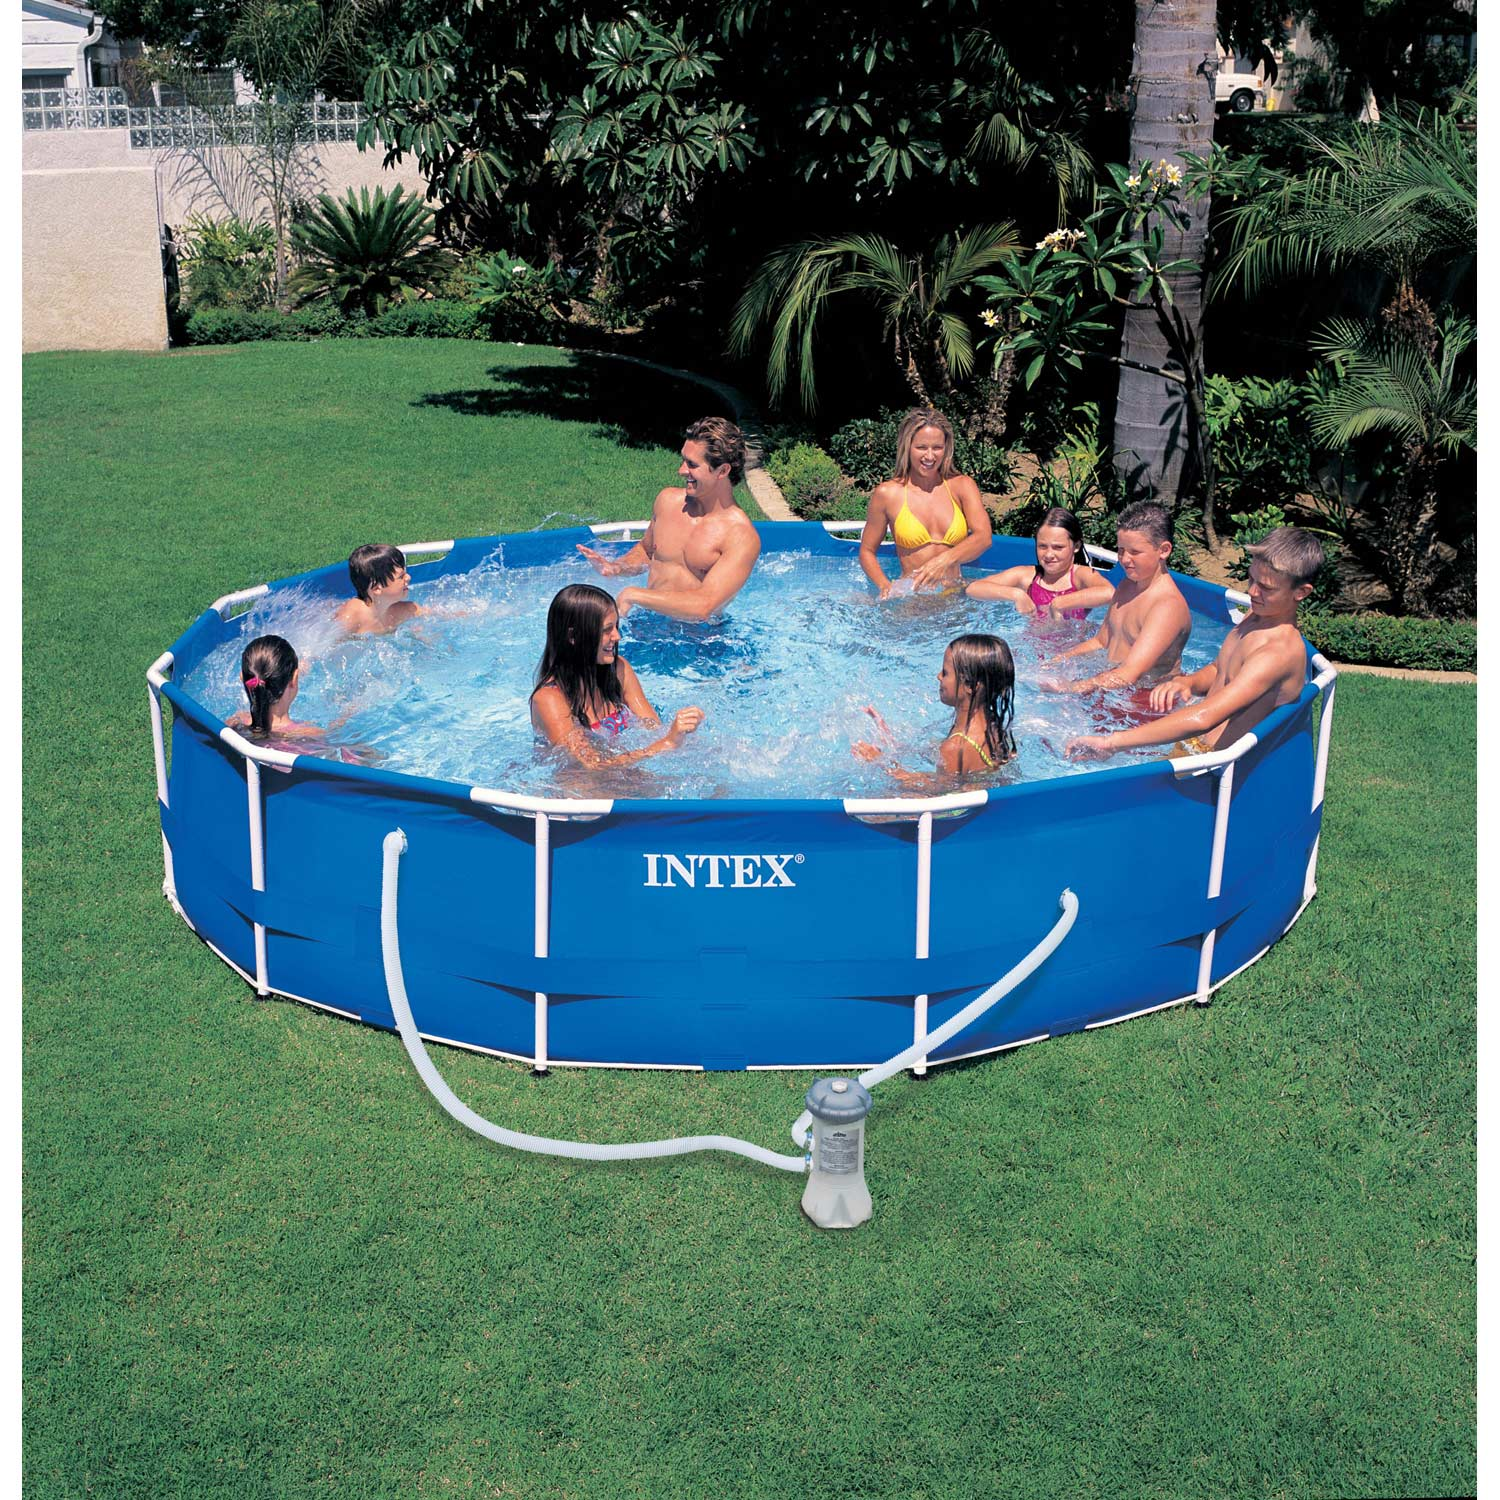 Piscine hors sol autoportante tubulaire metal frame intex for Piscine hors sol 3x4m